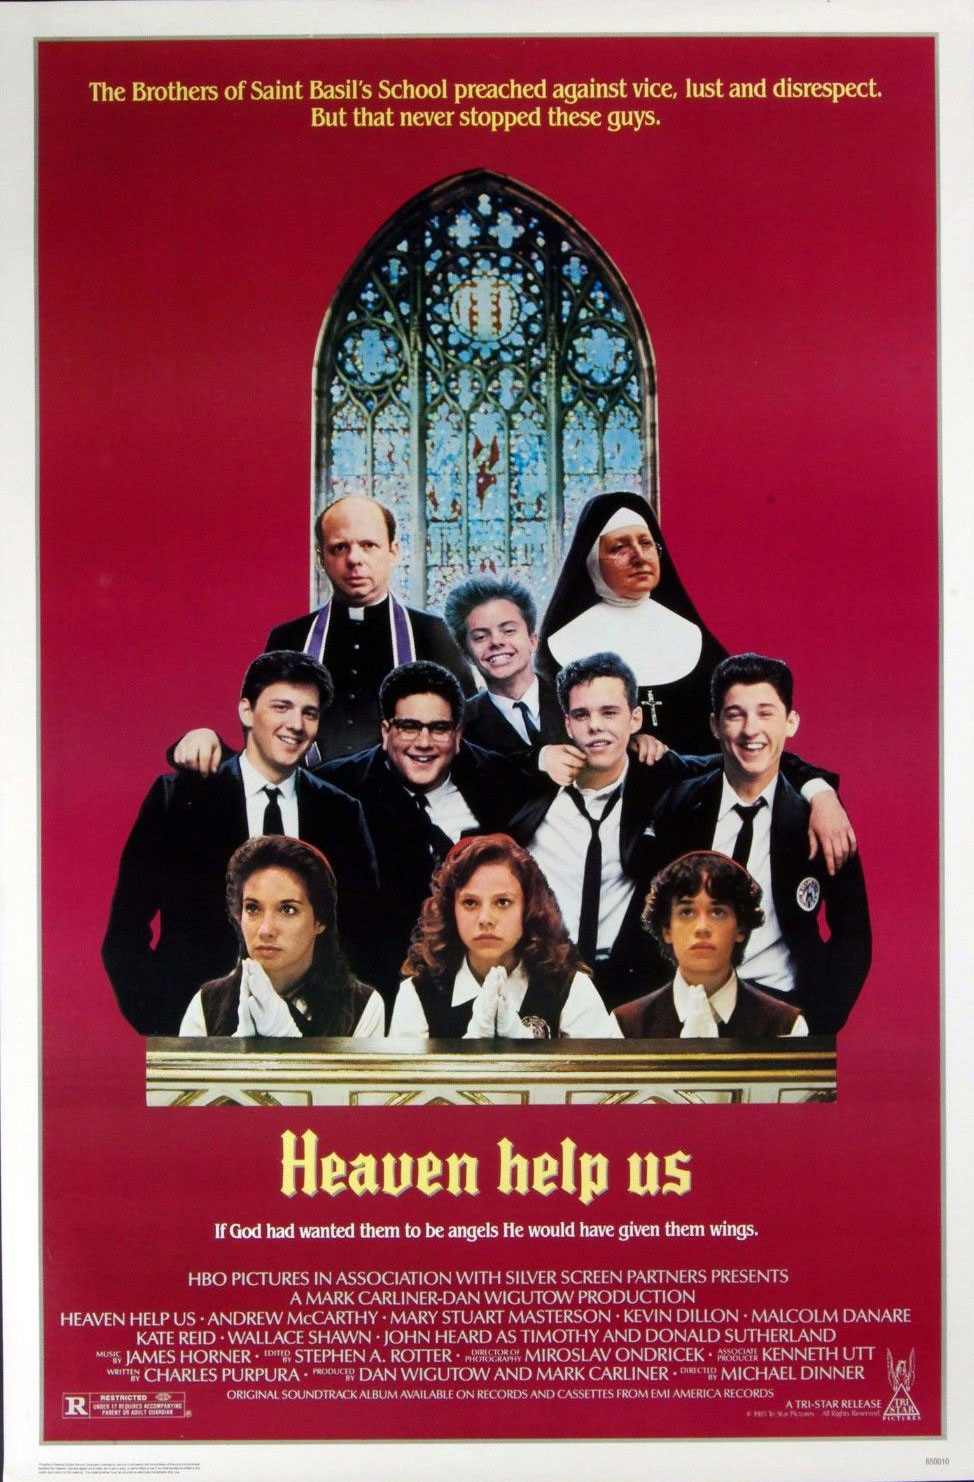 Andrew McCarty Heaven Help Us 1985 Movie Poster 27 x 41 1 sheet